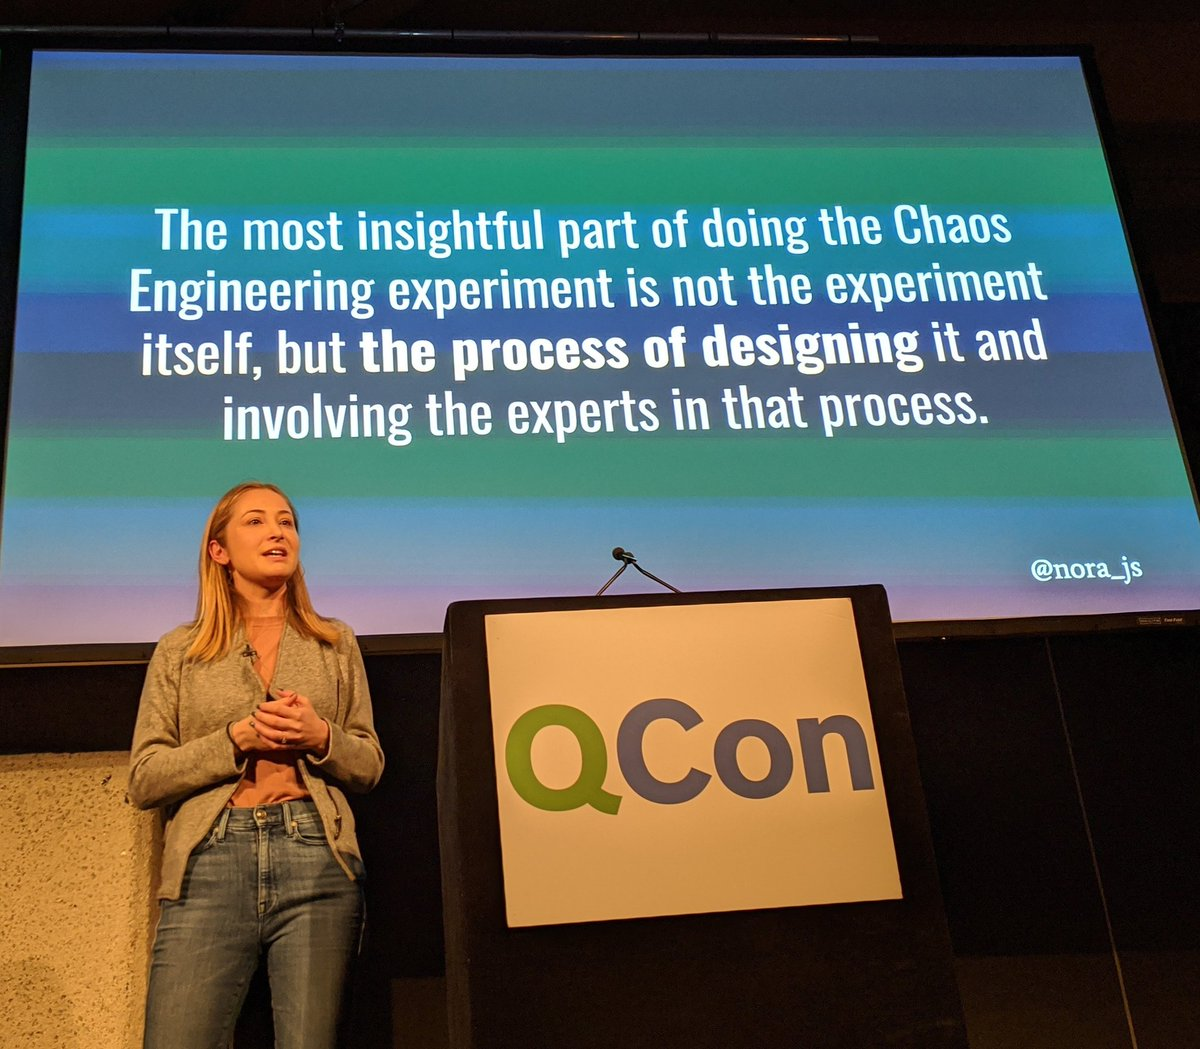 Valuable insights from @nora_js about where the real value of chaos engineering lies #QConLondon